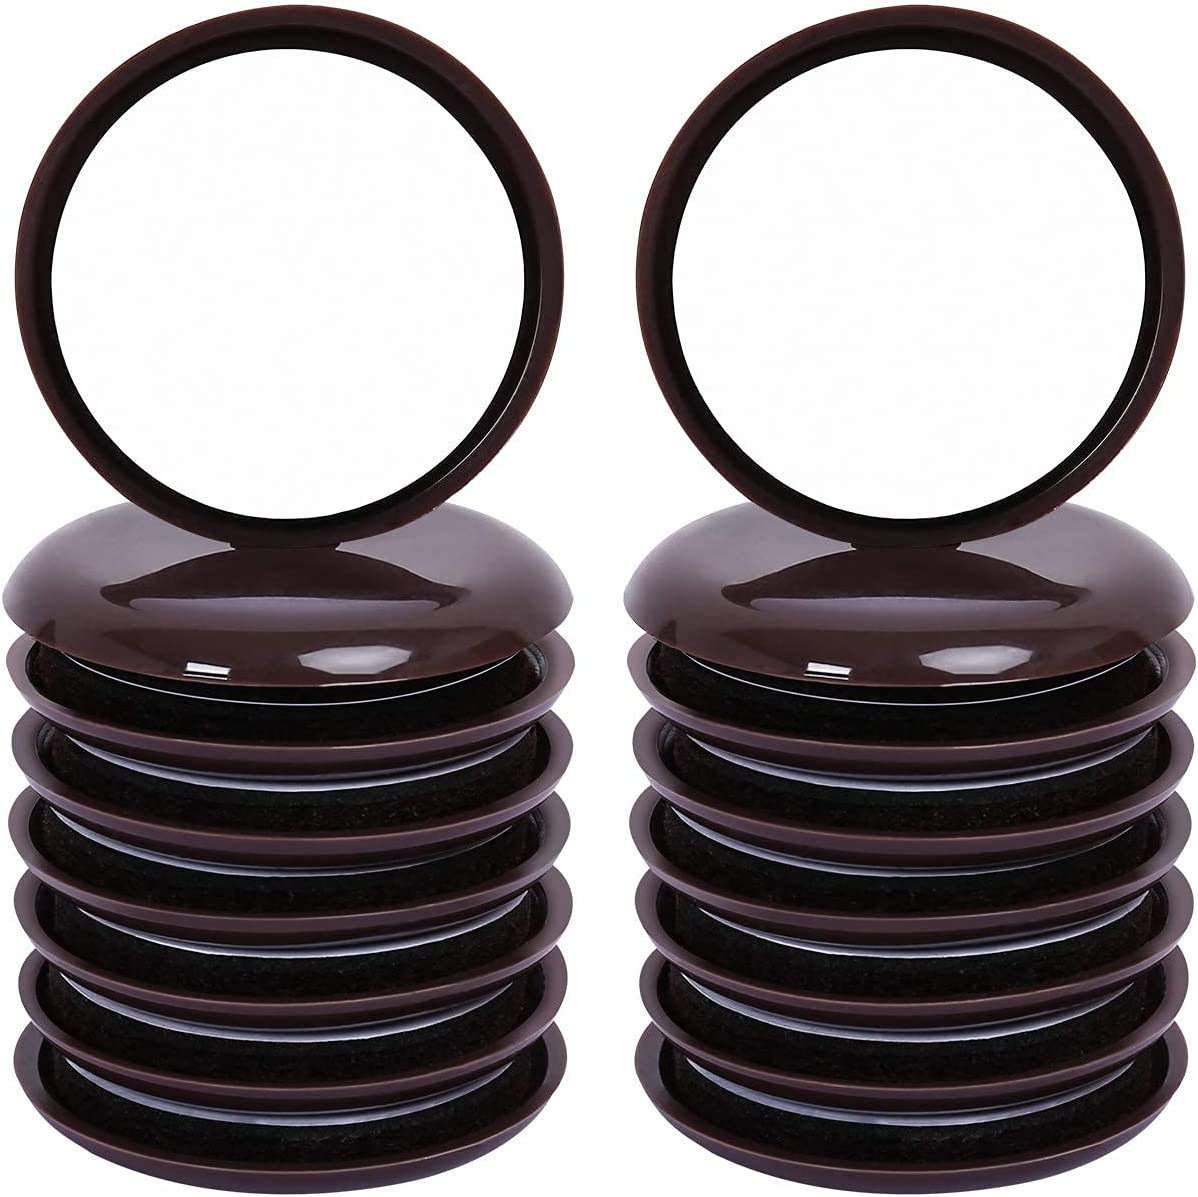 RCHYFEED 16 PCS Self-Stick Furniture Sliders, 2-1/8 inch Furniture Glides for Carpet, Furniture Moving Pads Self Adhesive Furniture Movers for Carpet Sliders(Round, Brown)